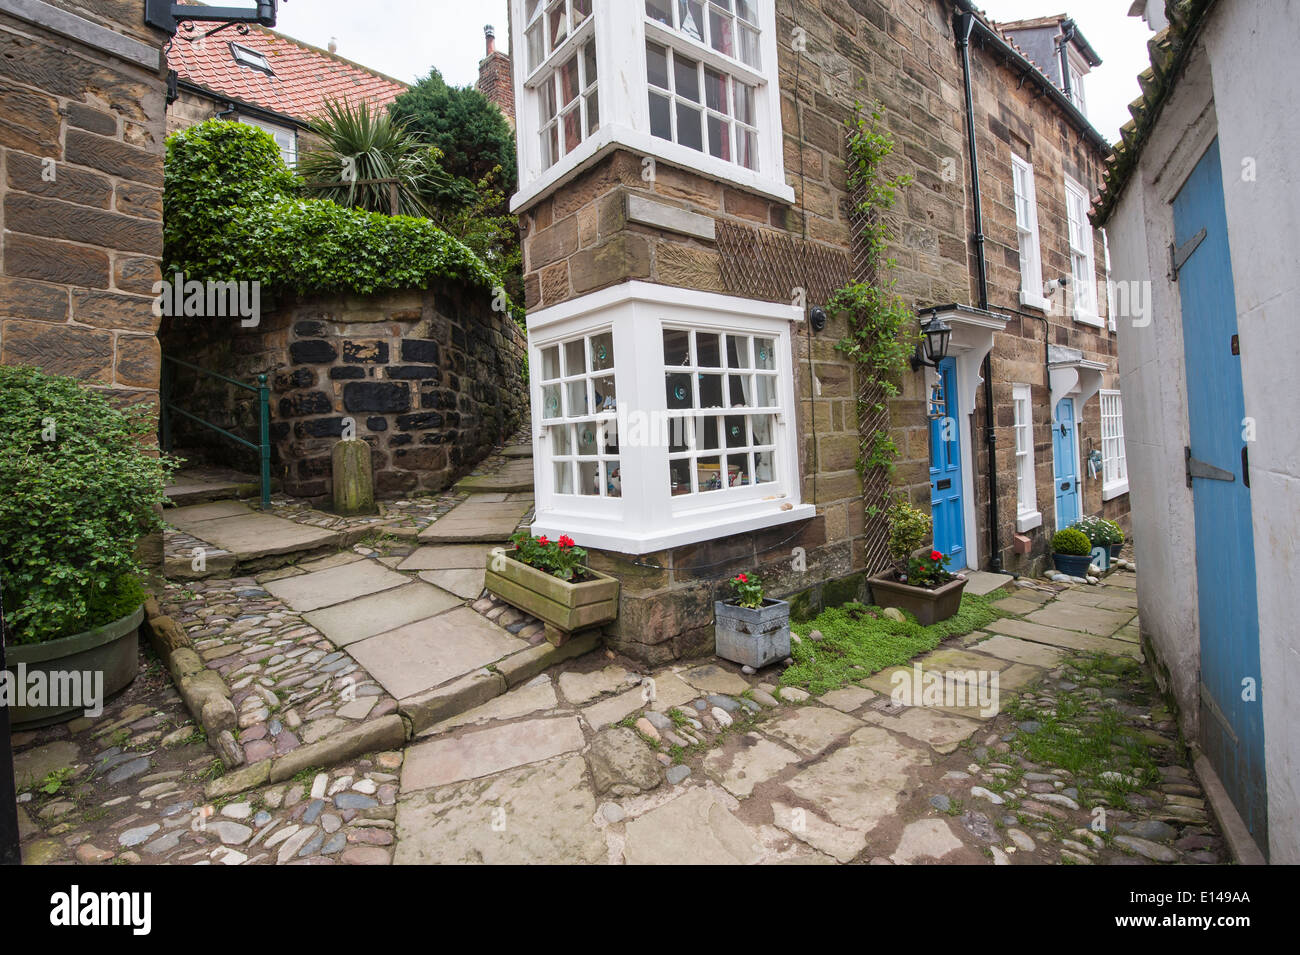 Corner of old country cottage building in english rural village with cobbled footpath on hill Stock Photo